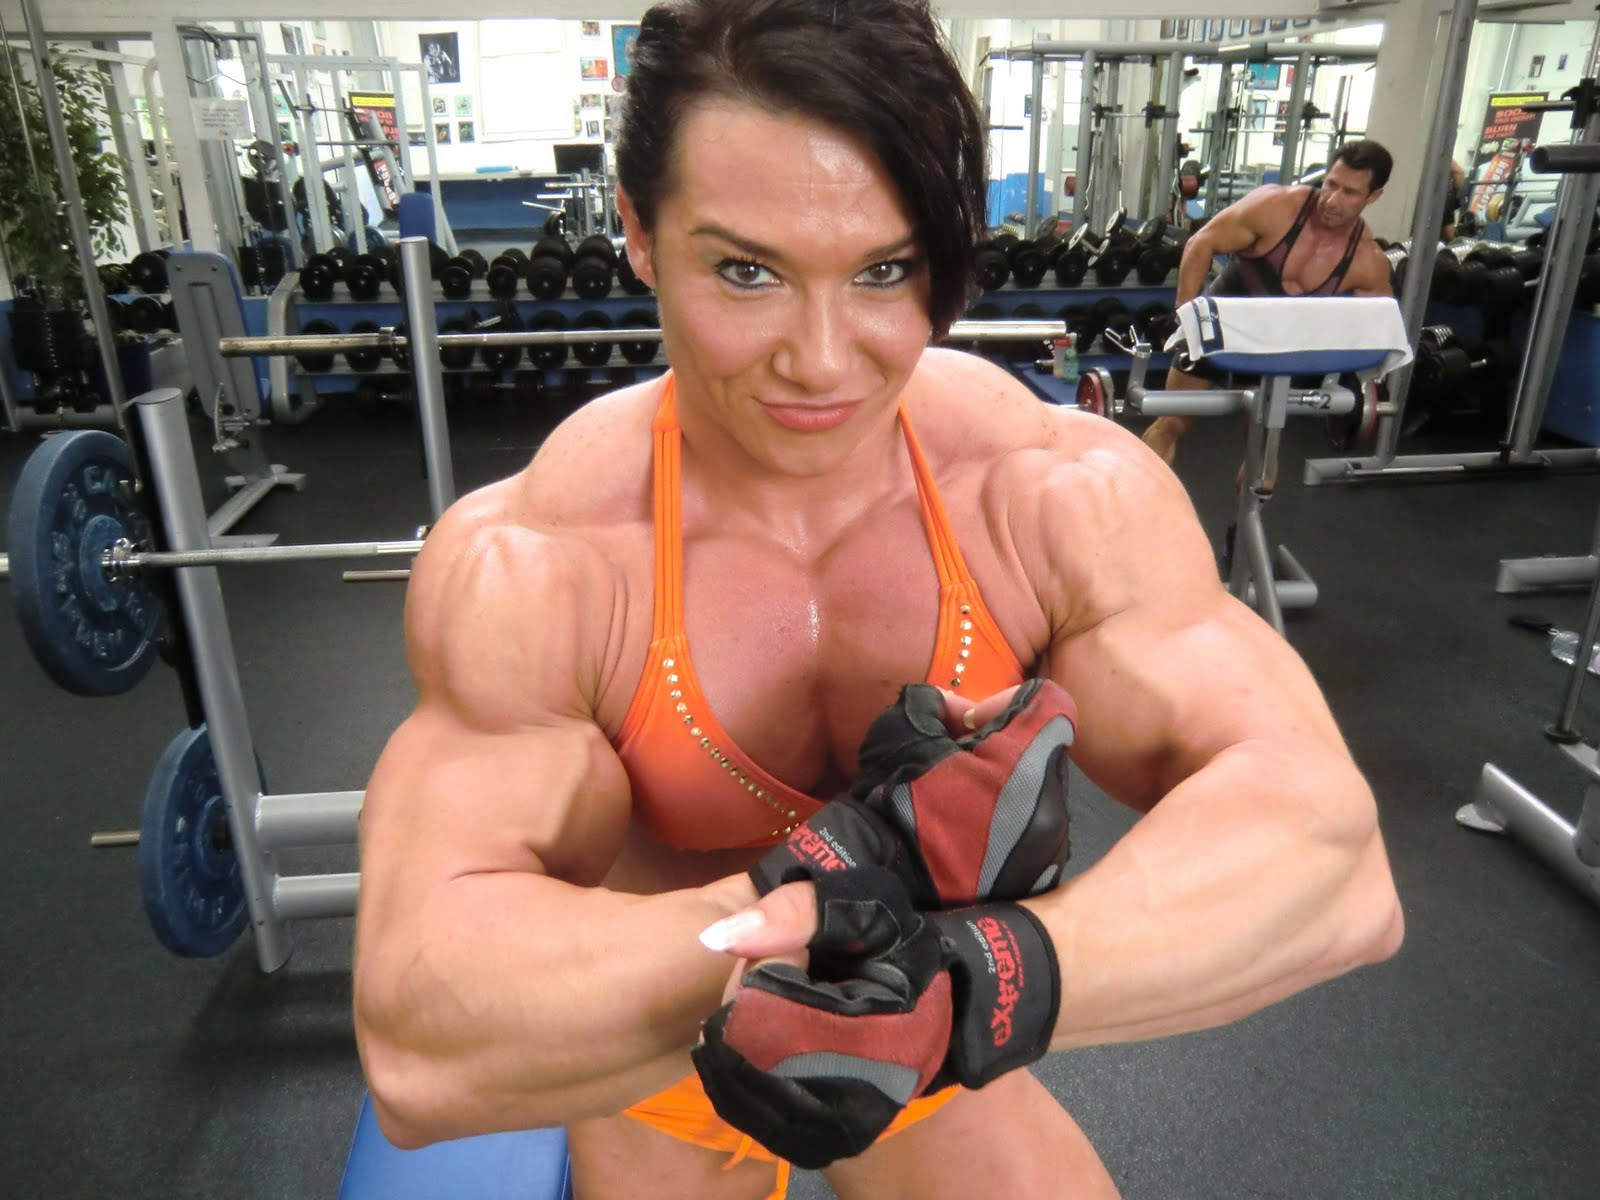 3 female bodybuilders play with each other 5